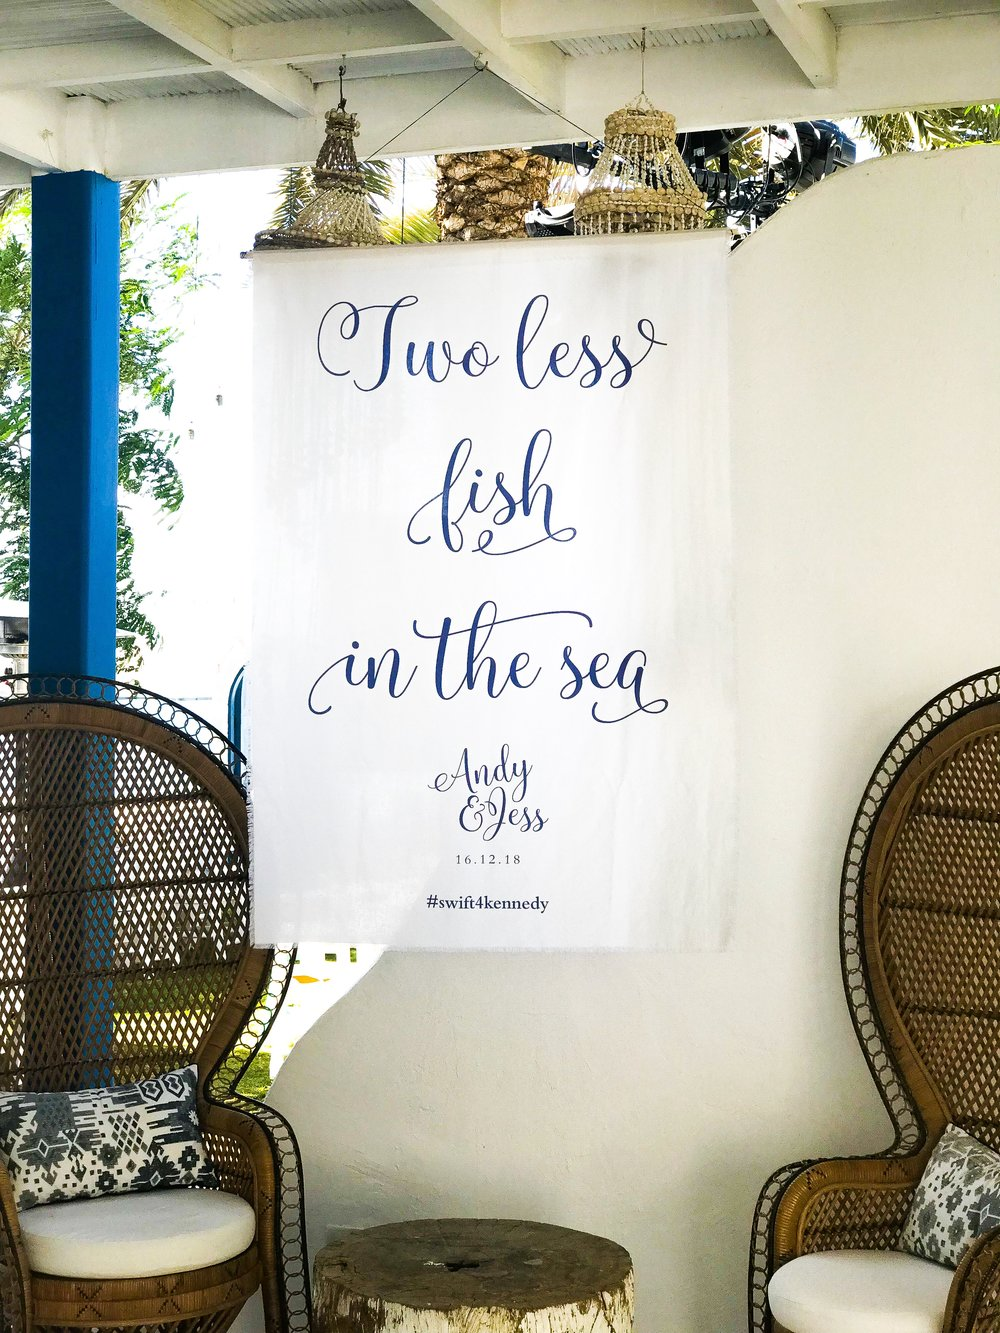 One of our beautiful fabric quote banners